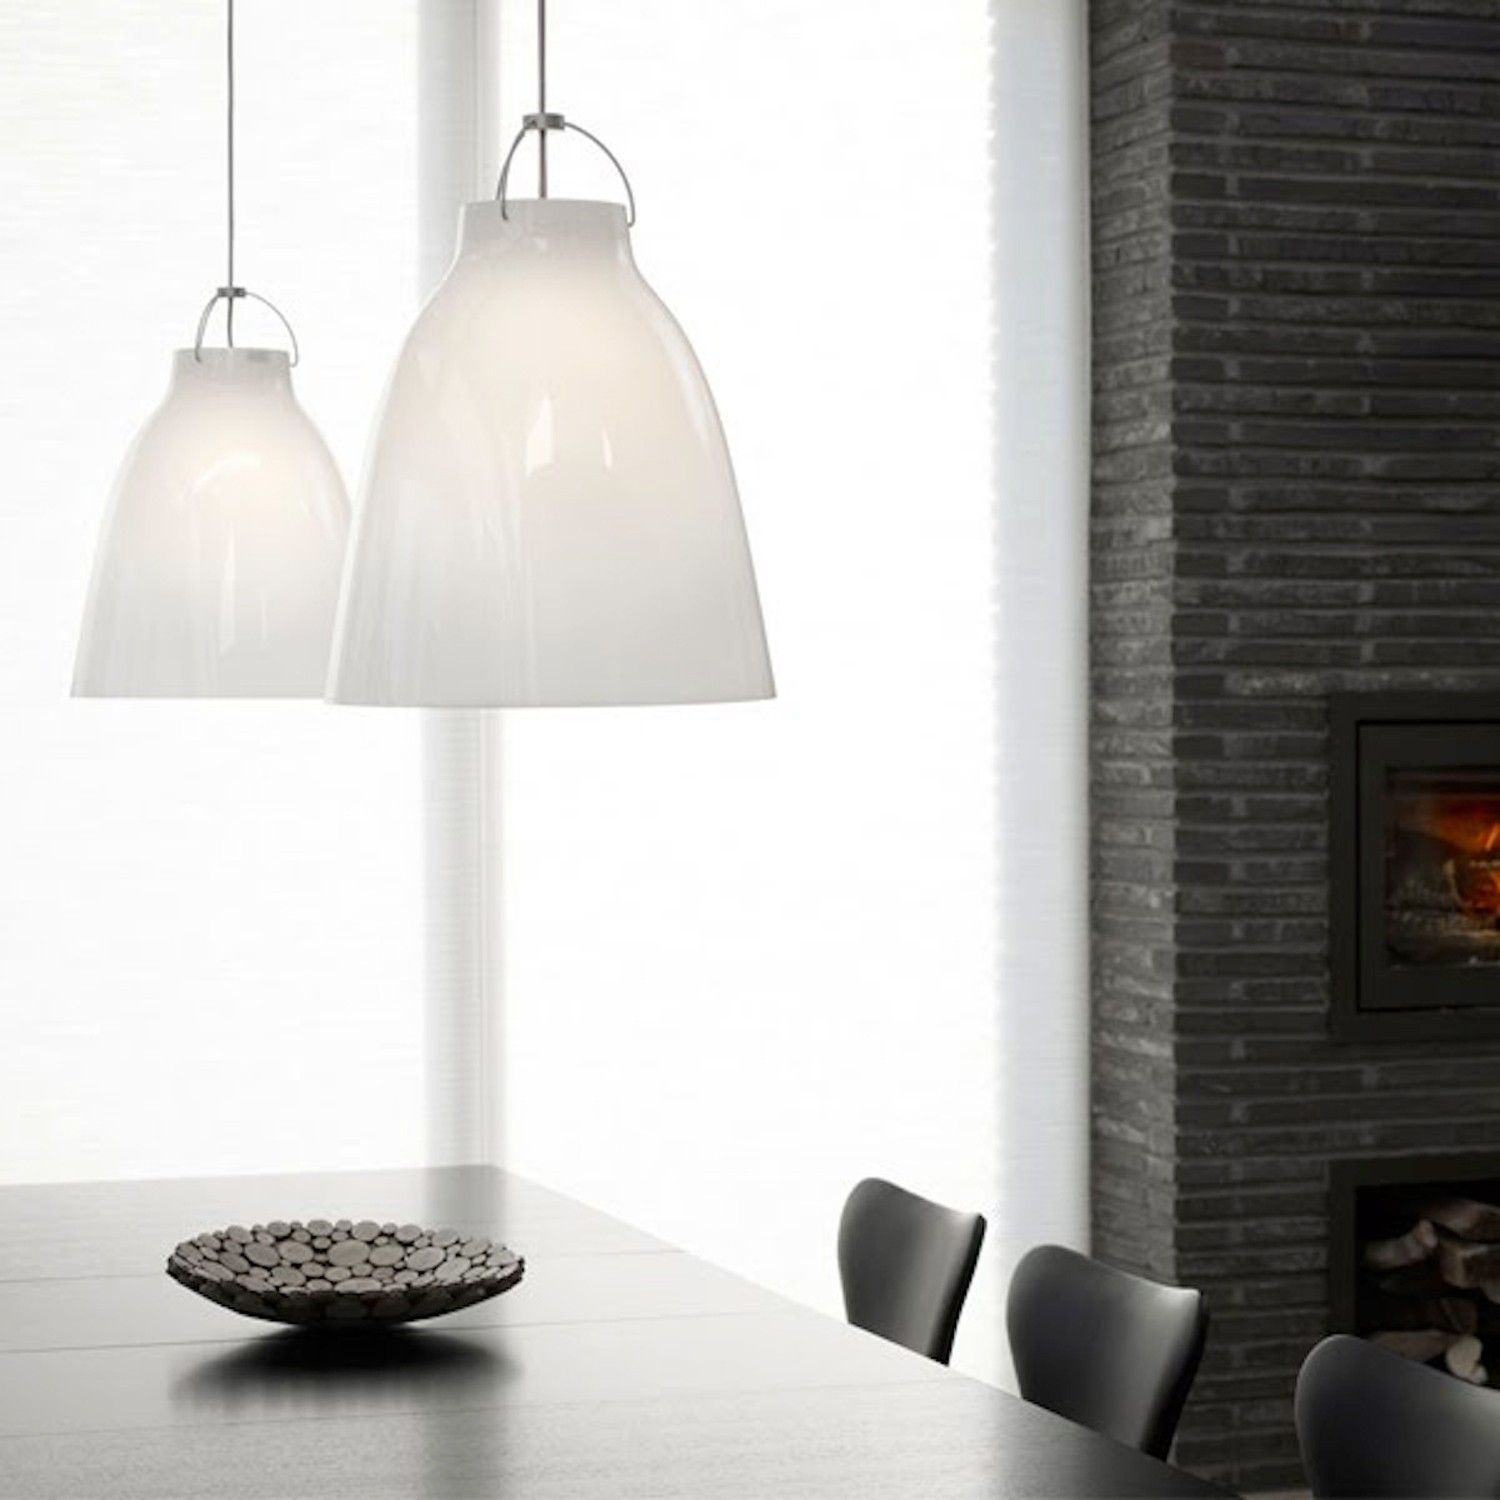 The Caravaggio Pendant Lamp Has Obtained The Status Of A